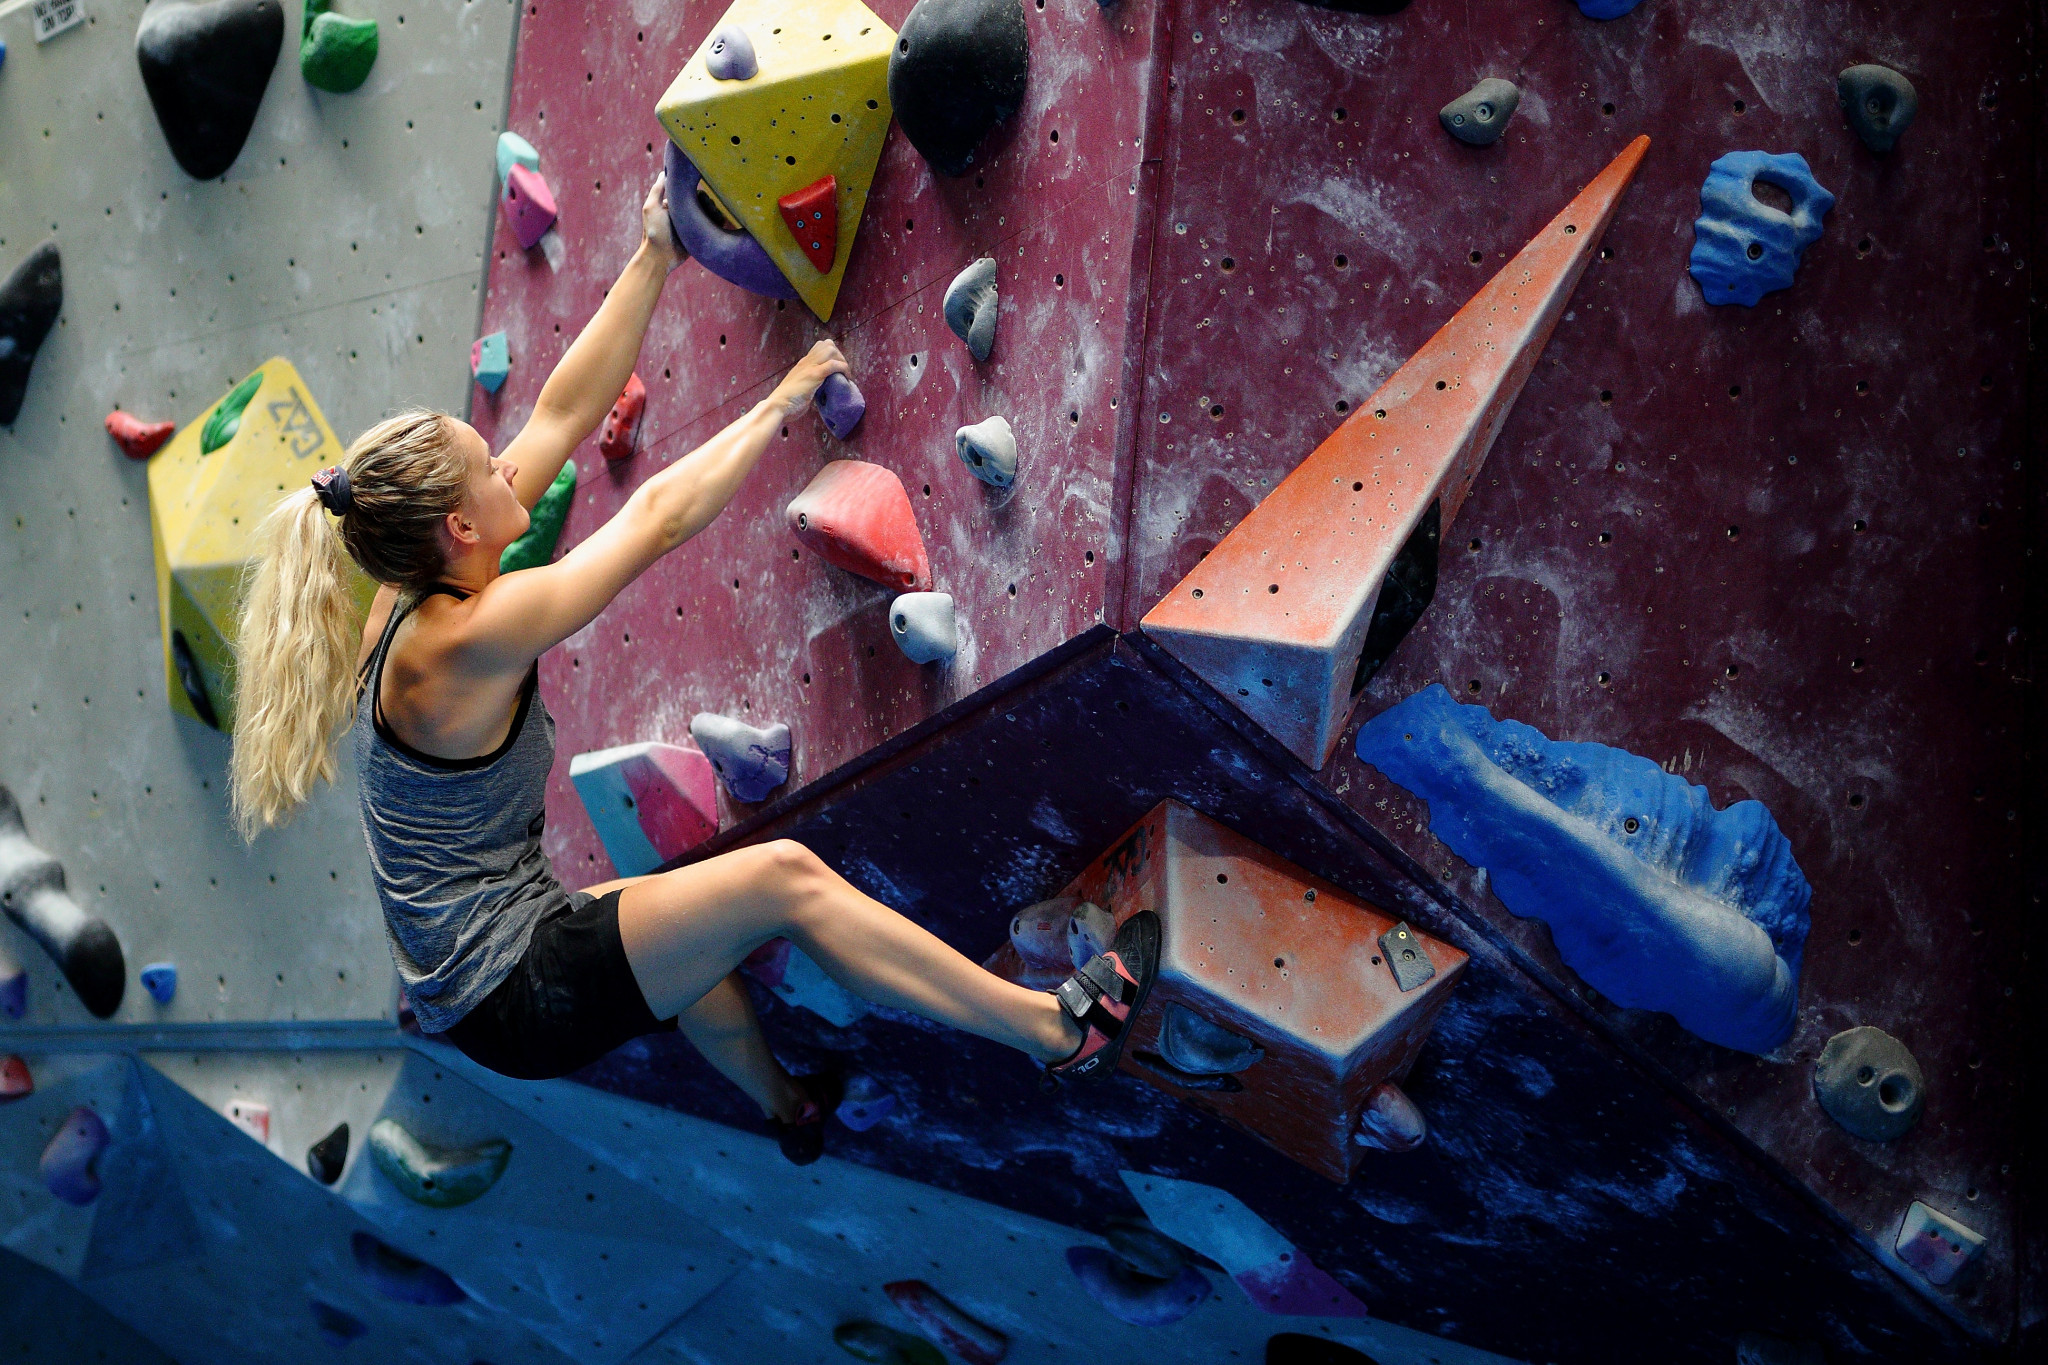 Shauna Coxsey is among the GB Climbing stars hoping to qualify for the 2020 Olympic Games in Tokyo ©Getty Images